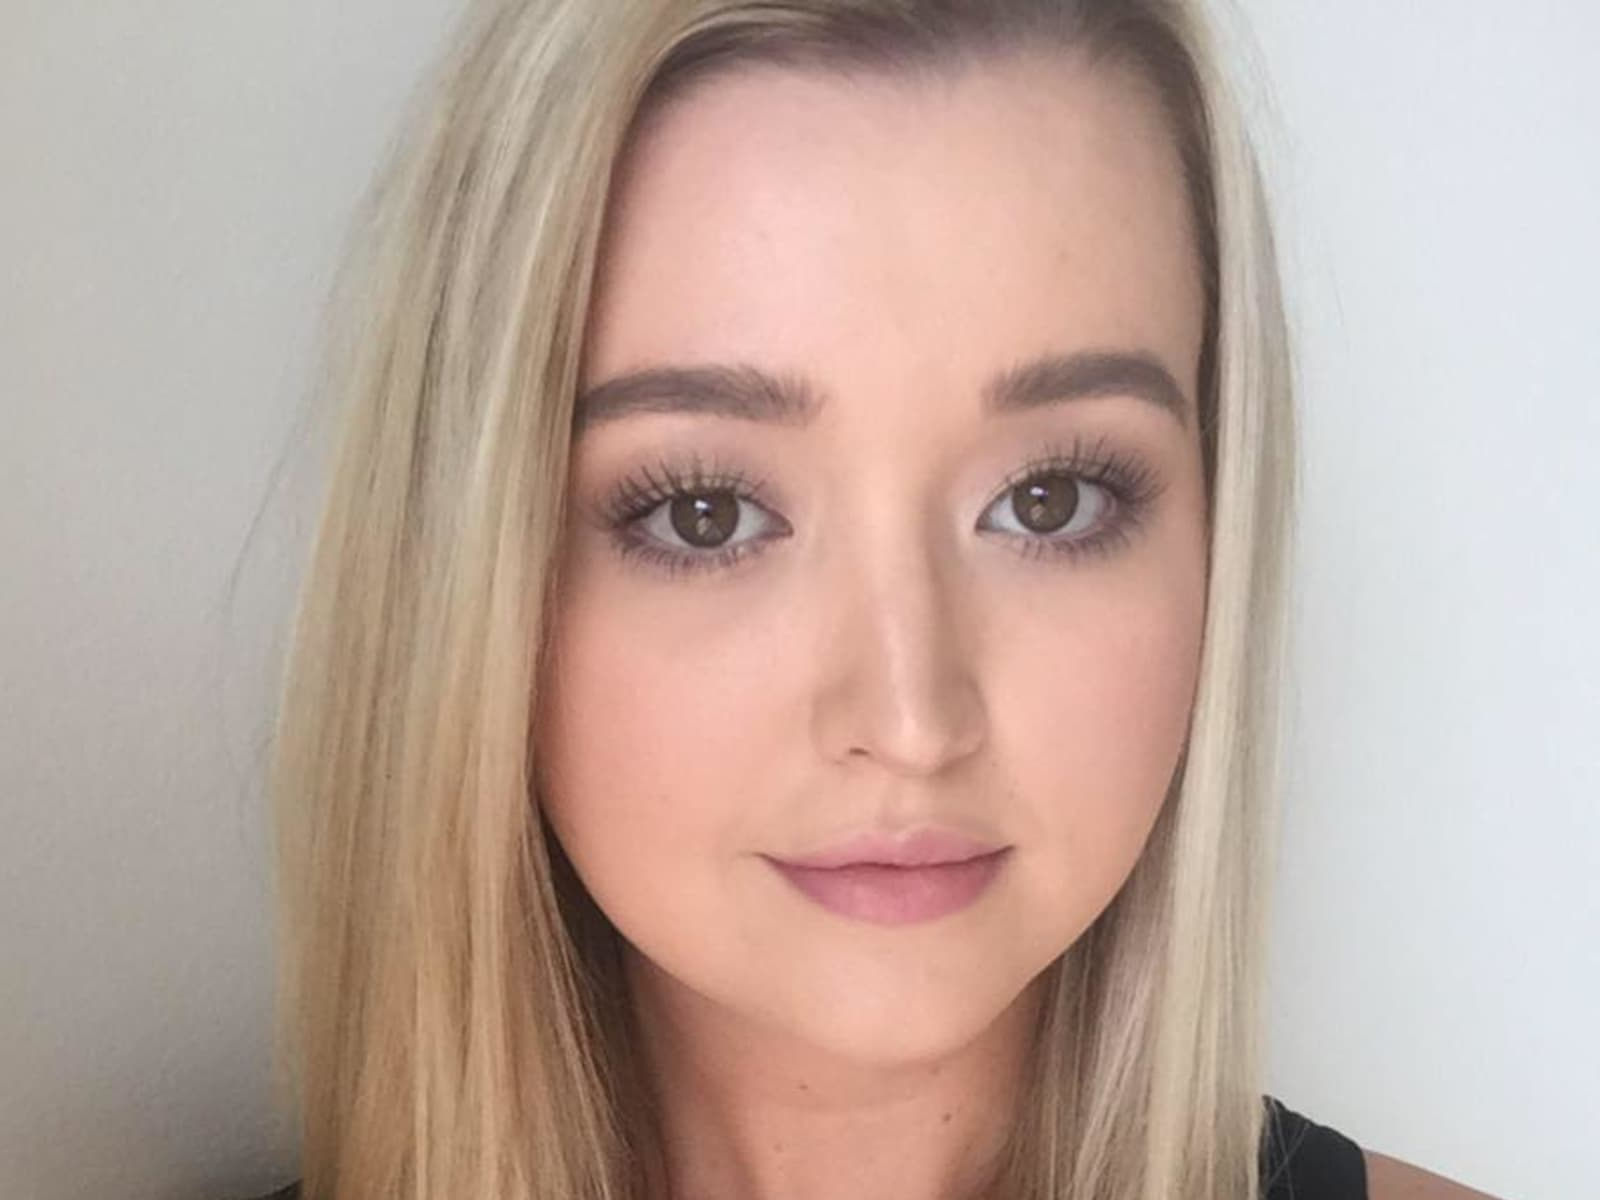 Olivia-grace from Sydney, New South Wales, Australia